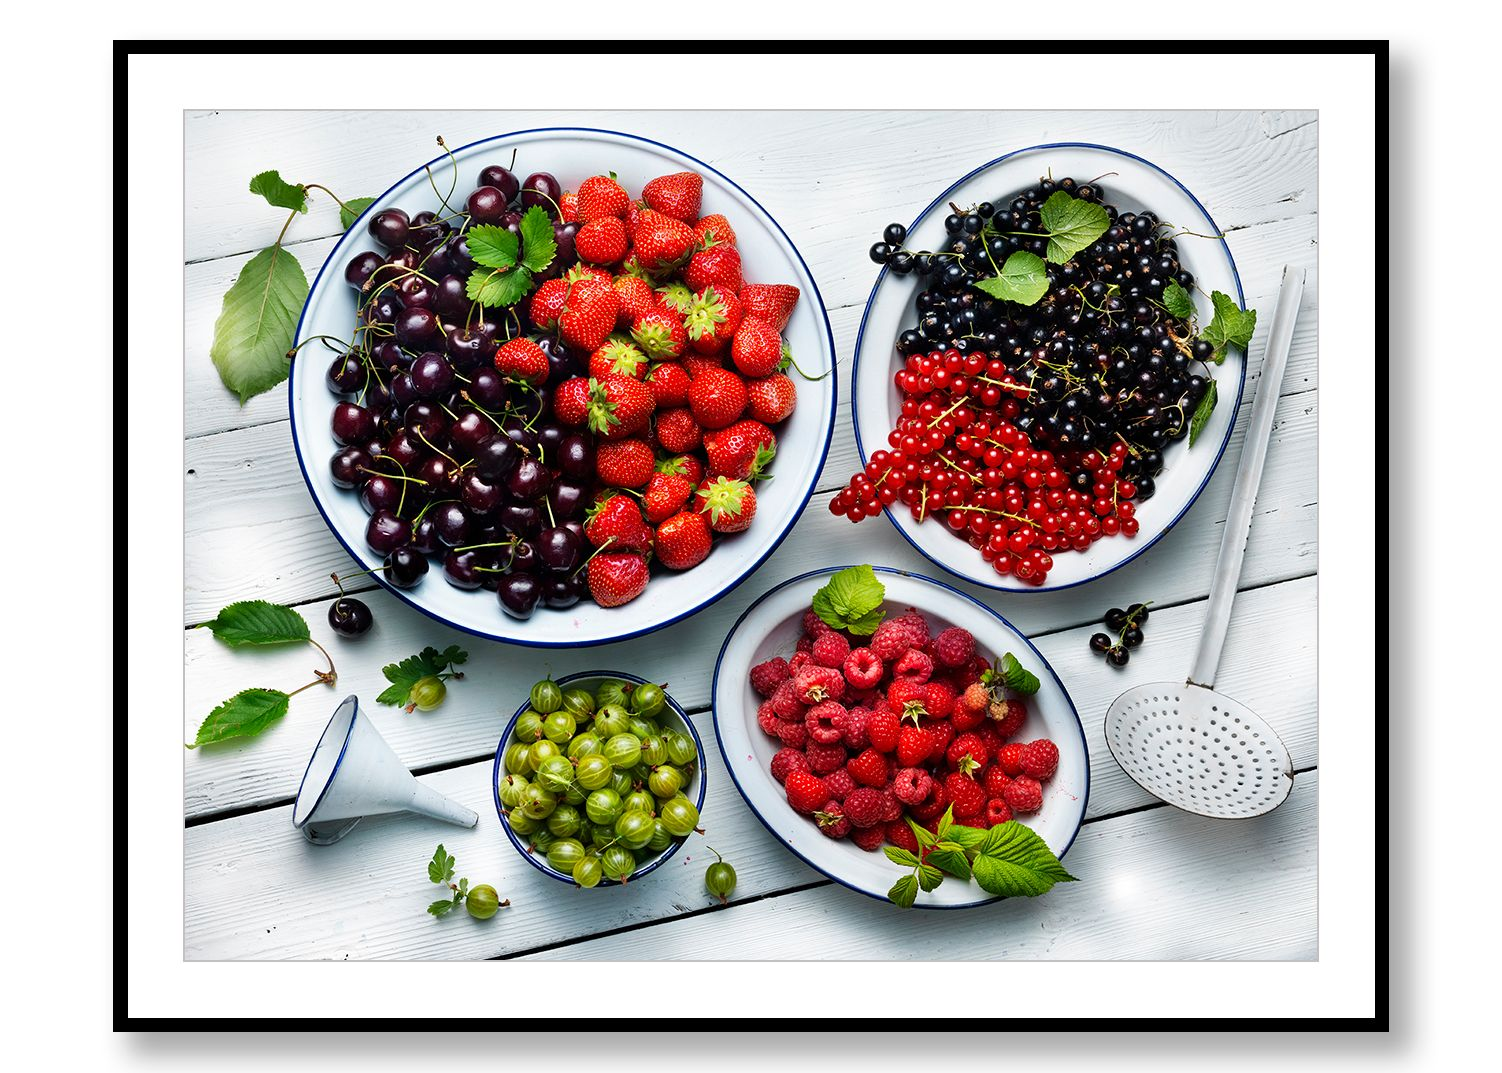 Freshly harvested summer berries. Food Art. Prints for Sale. Photo by Fredrik Rege